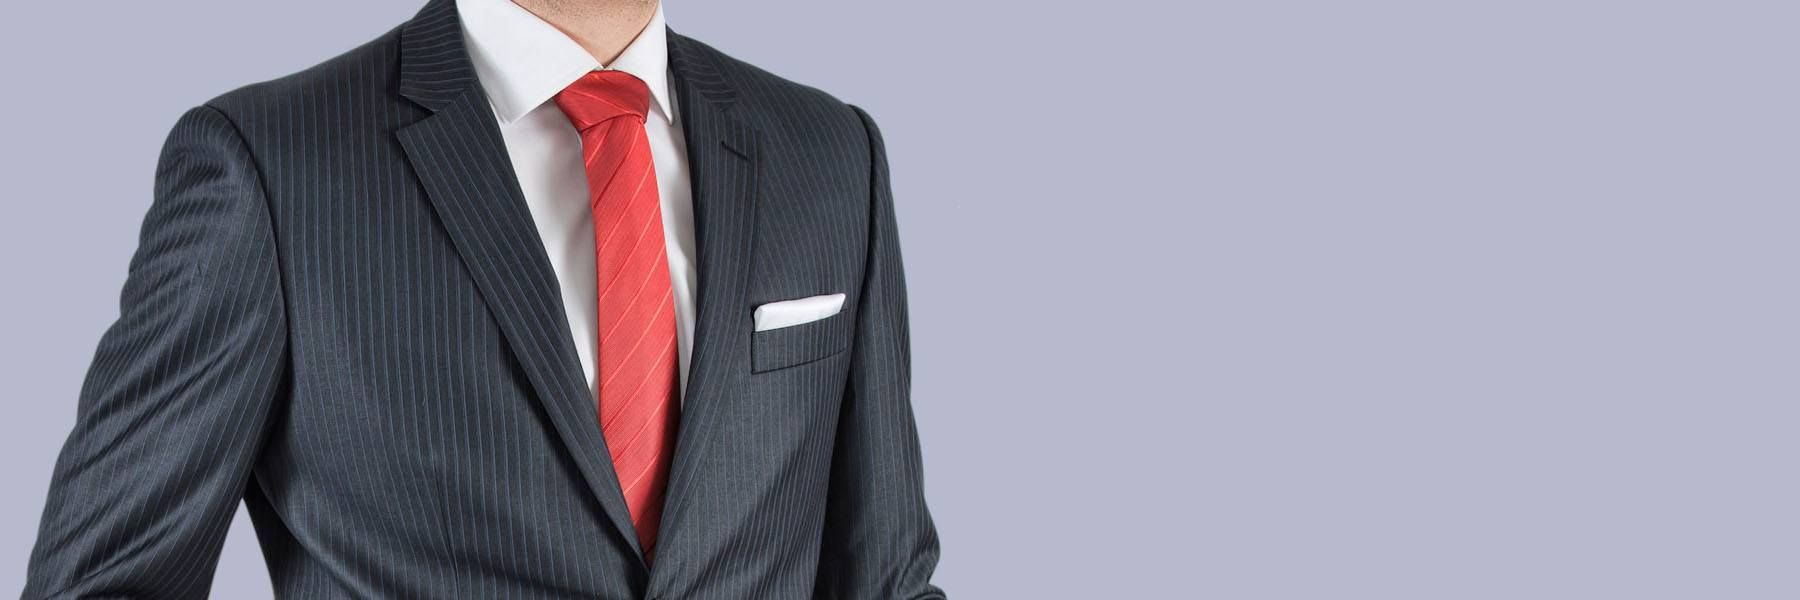 Design your own tailor made suit online for wedding purpose or any ...